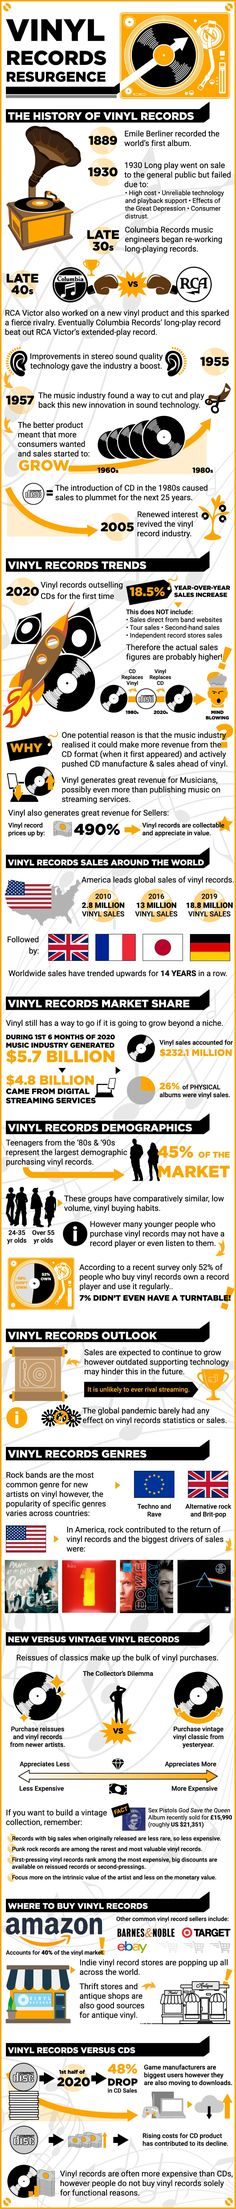 Vinyl Records Resurgence Statistics and Infographic | Vinyl Restart Sell Vinyl Records, Columbia Records, Music Labels, Information Design, Compact Disc, Music Industry, New Artists, Statistics, Infographic